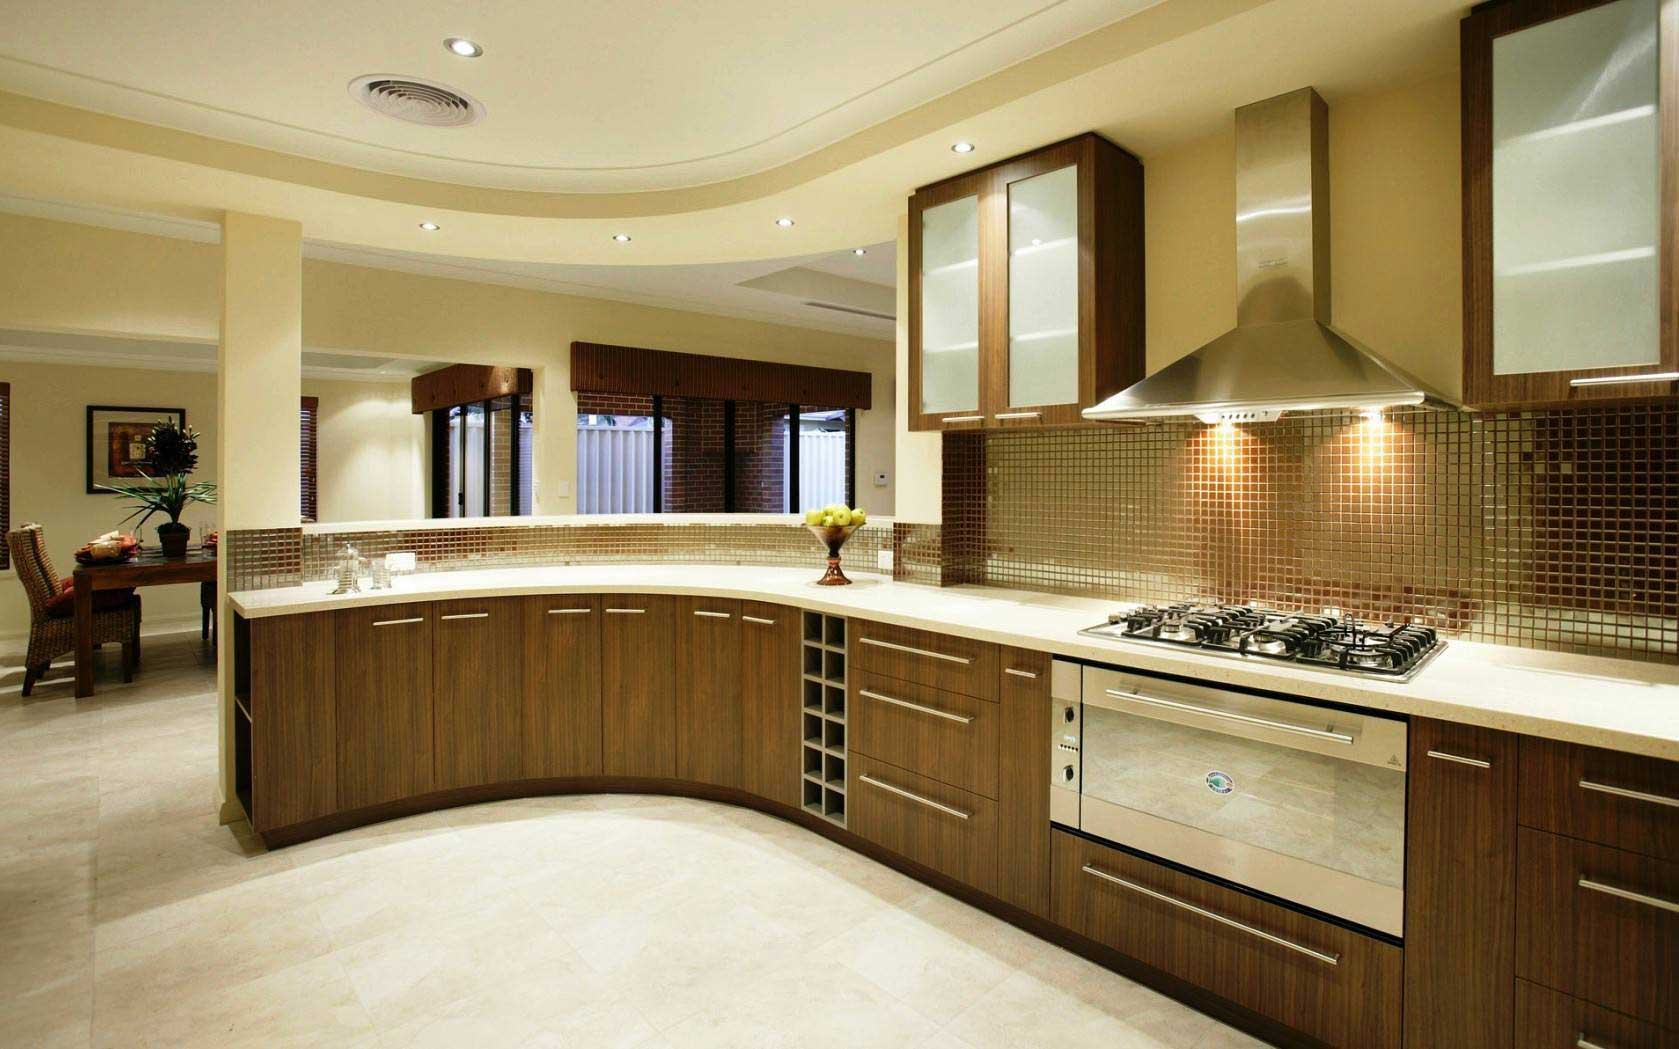 kitchen interior designs future space interior - Kitchen Interior